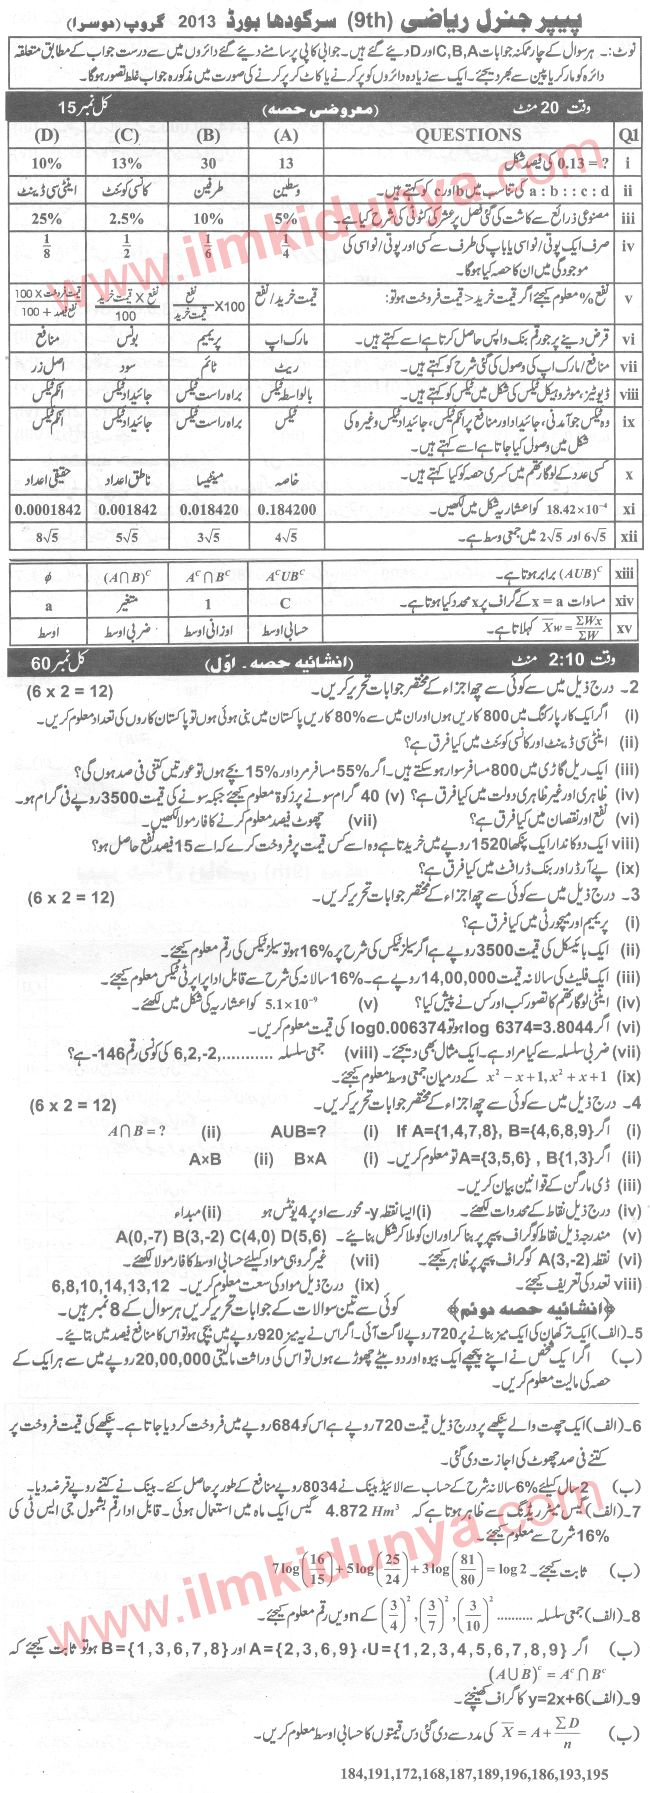 Past Papers 2013 Sargodha Board 9th Class General Math